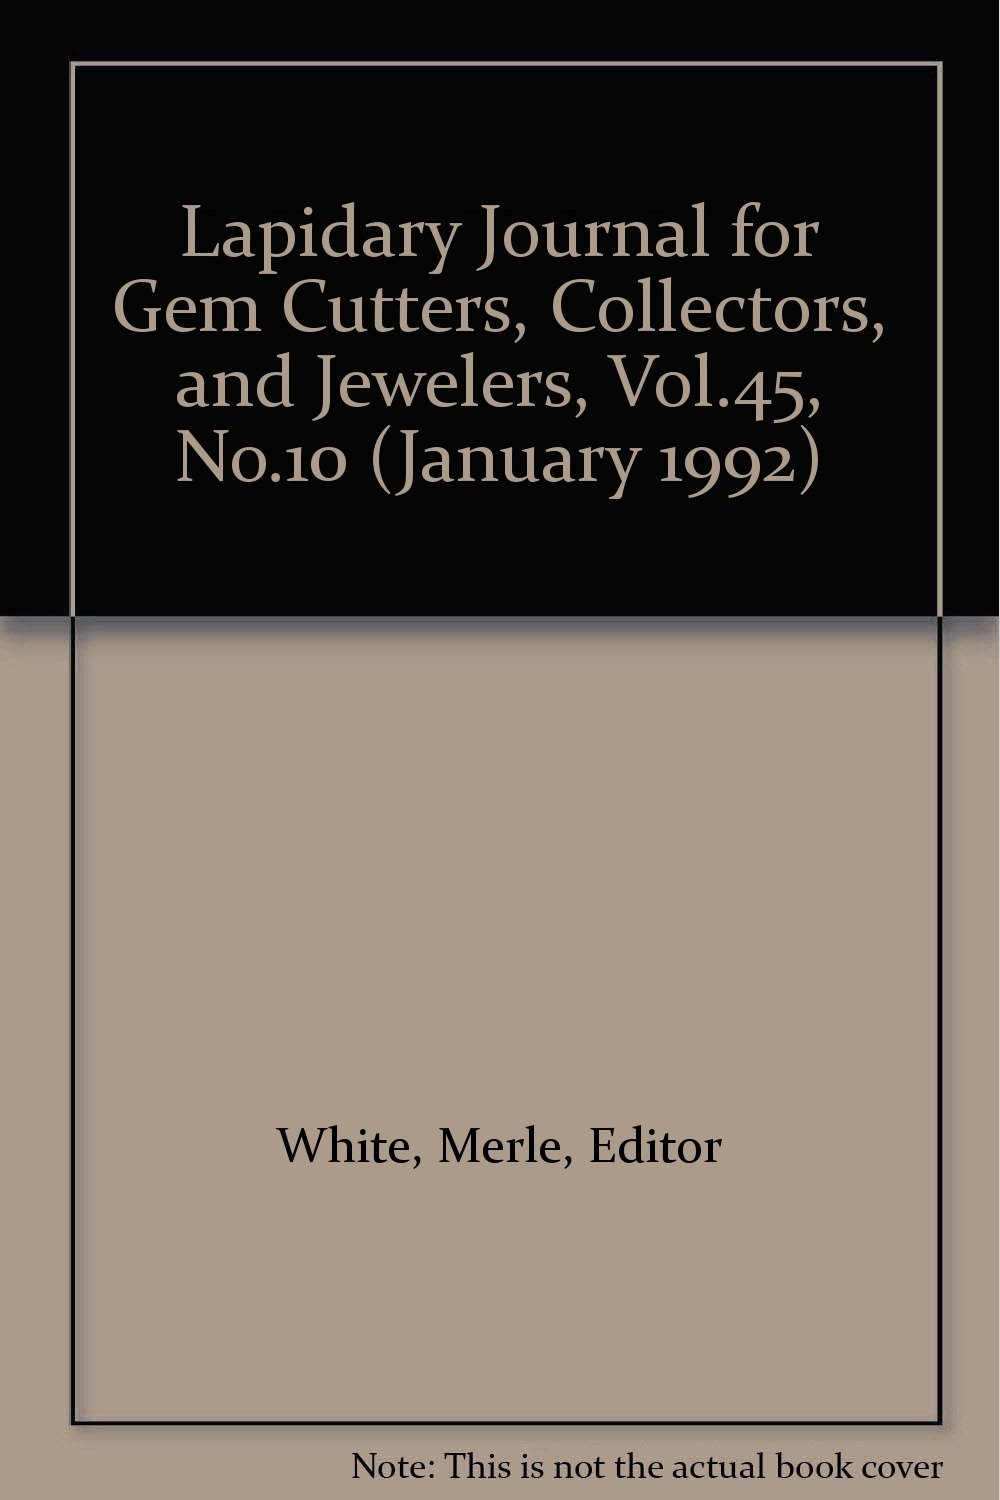 Lapidary Journal for Gem Cutters, Collectors, and Jewelers, Vol.45, No.10 (January 1992)